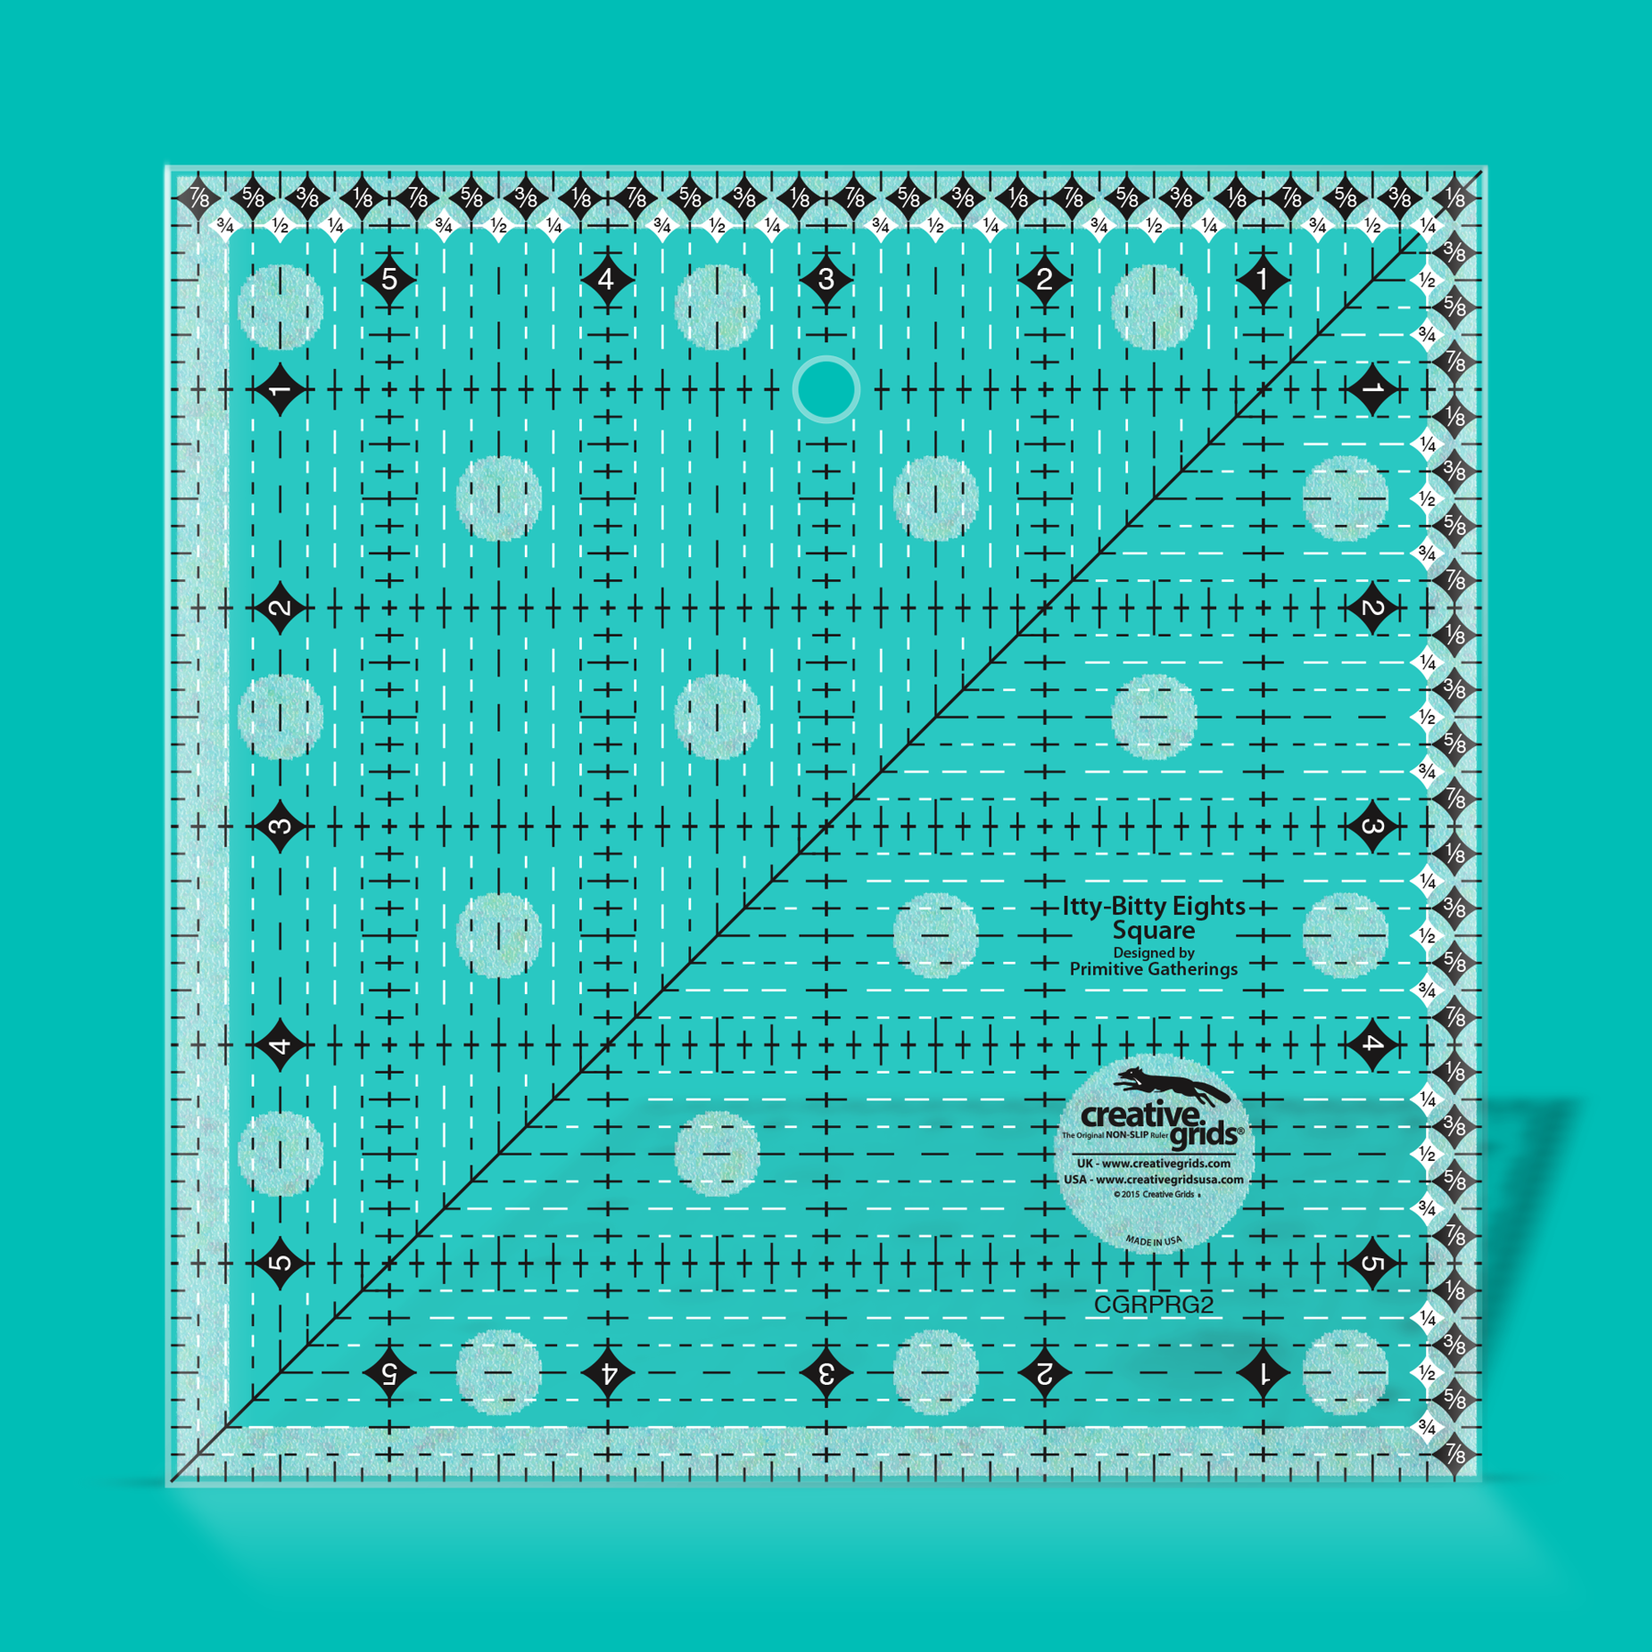 Creative Grids Creative Grids Itty-Bitty Eights Square CGRPRG2